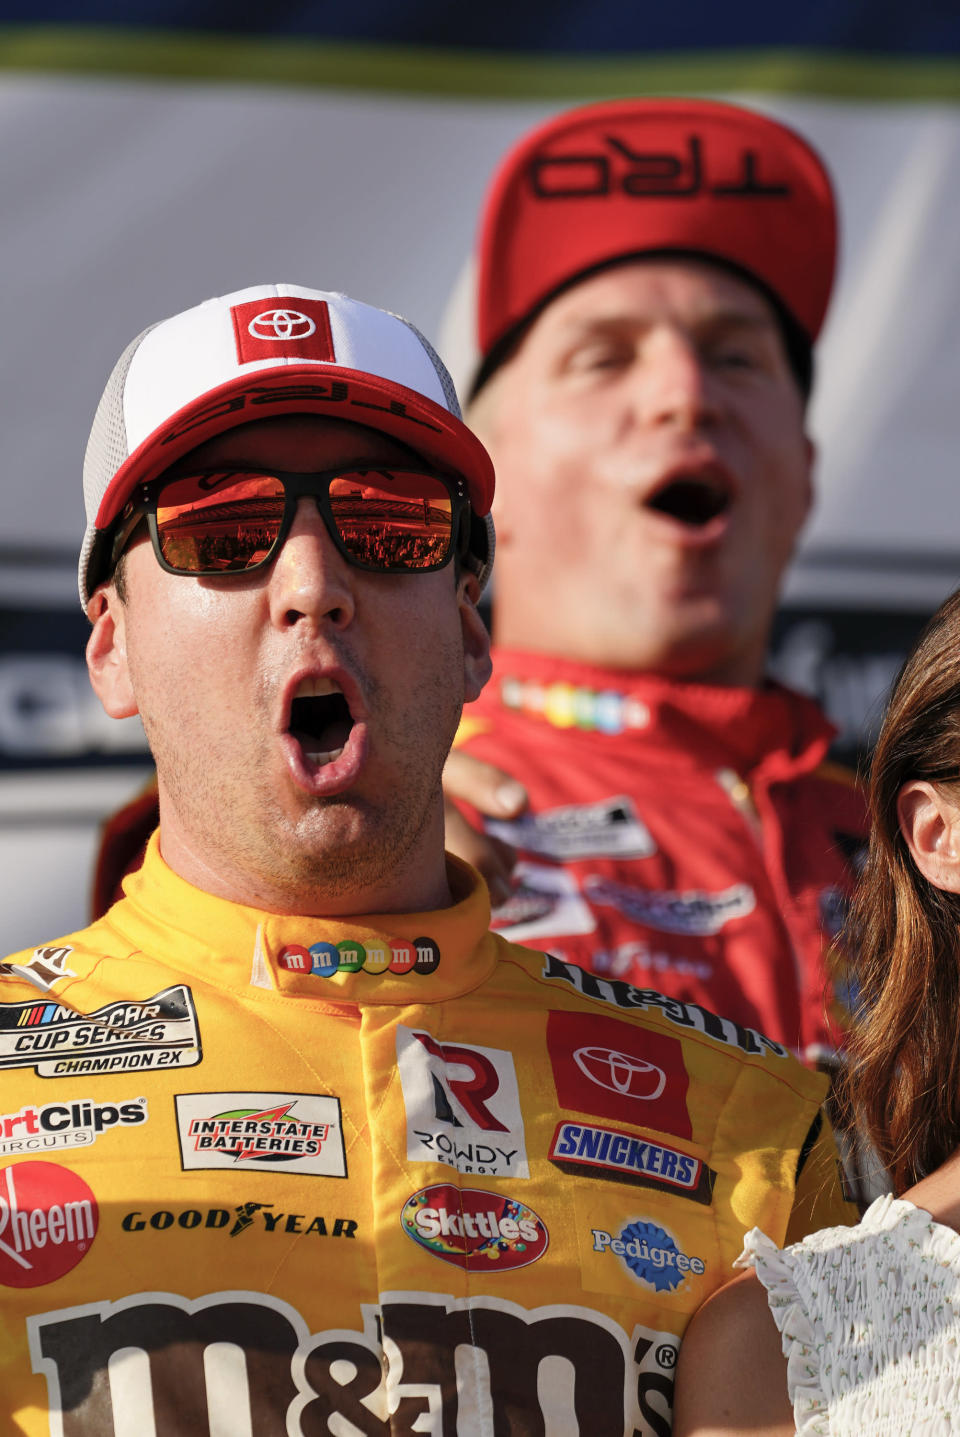 Kyle Busch, left, celebrates with teammates after winning a NASCAR Cup Series auto race at Pocono Raceway, Sunday, June 27, 2021, in Long Pond, Pa. (AP Photo/Matt Slocum)